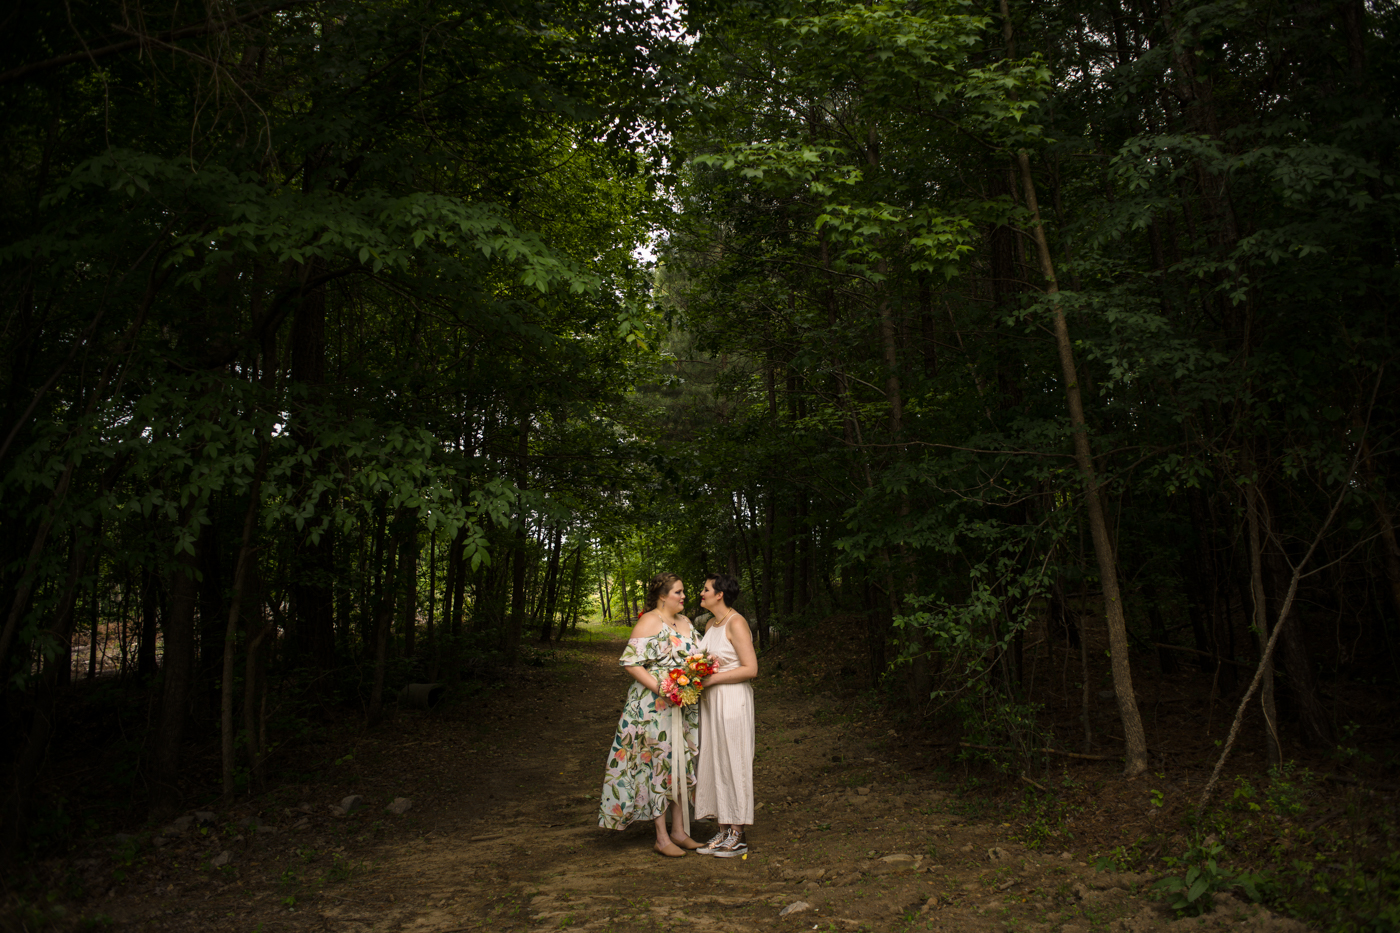 wedding portraits in woods of Raleigh NC park